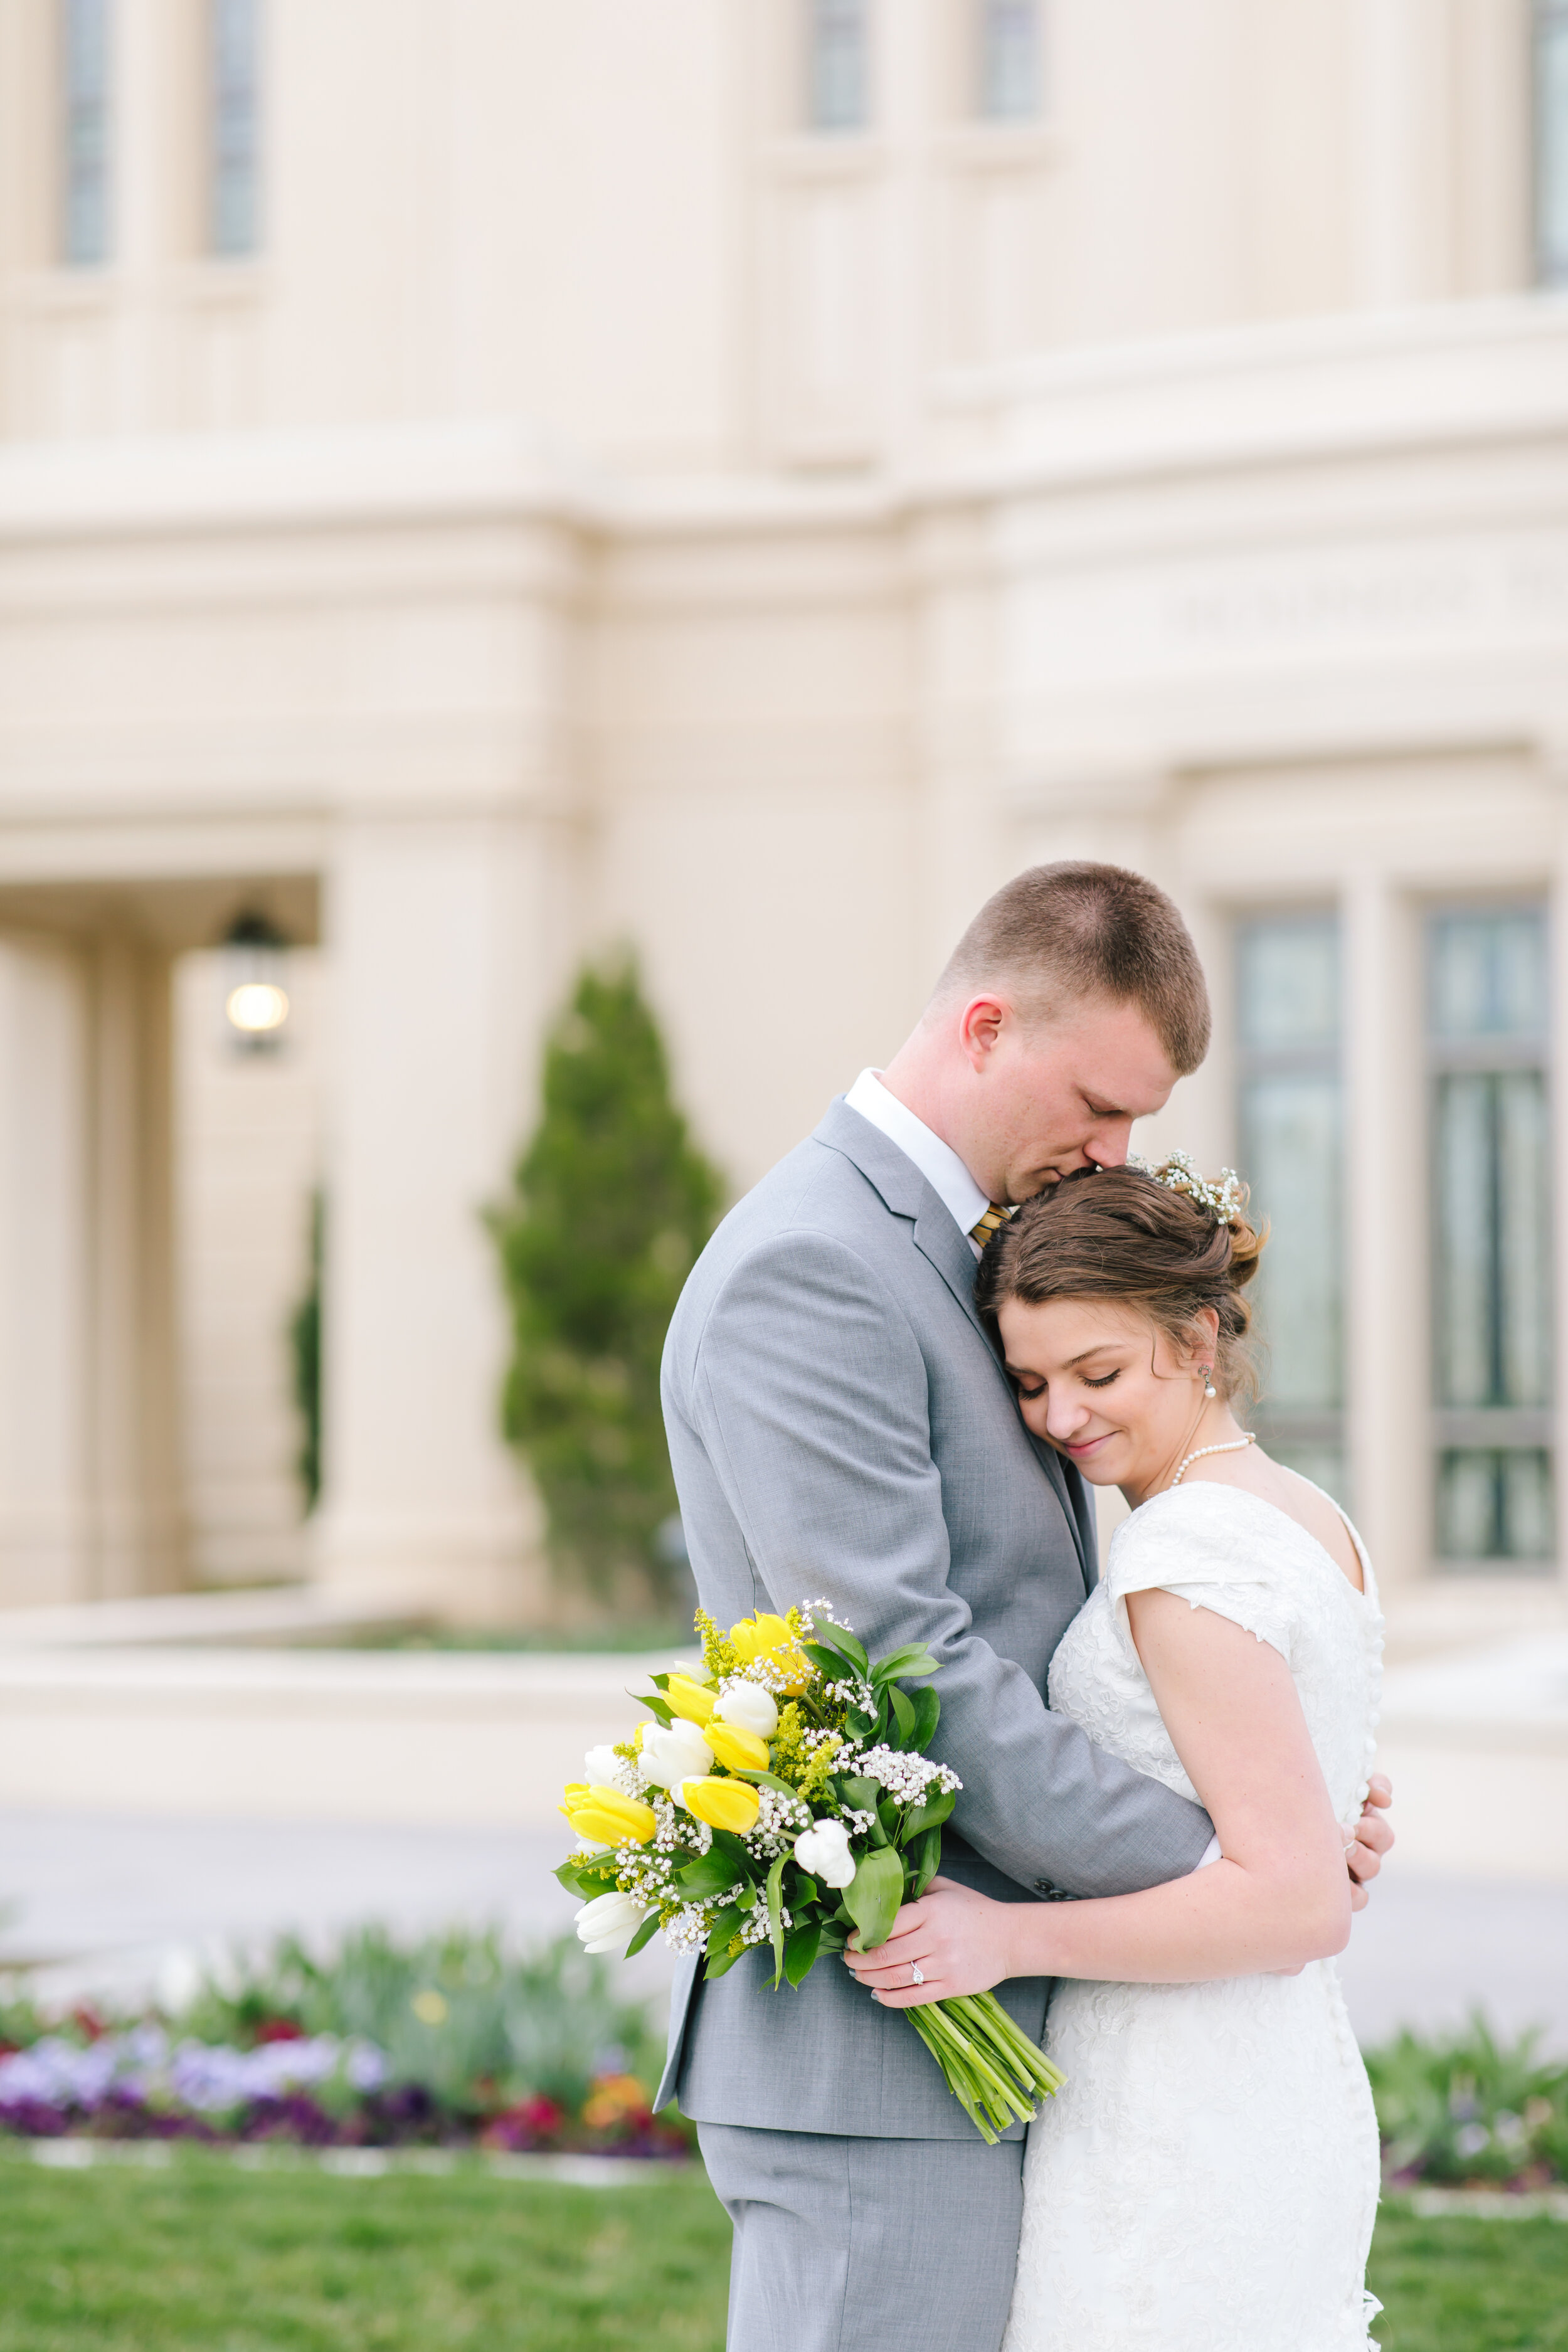 loving couple pose wedding hairstyle inspiration flowers in her hair wedding jewelry inspiration young love payson temple eternal marriages kissing head pose inspiration modest wedding dress back inspiration tulip sleeves lace dress lovebirds couple session #eternalbuddies #weddingsession #weddinginspo #ldswedding #ldsbride #couplegoals #paysontemple #temple #profressionalphotographer #utah #love